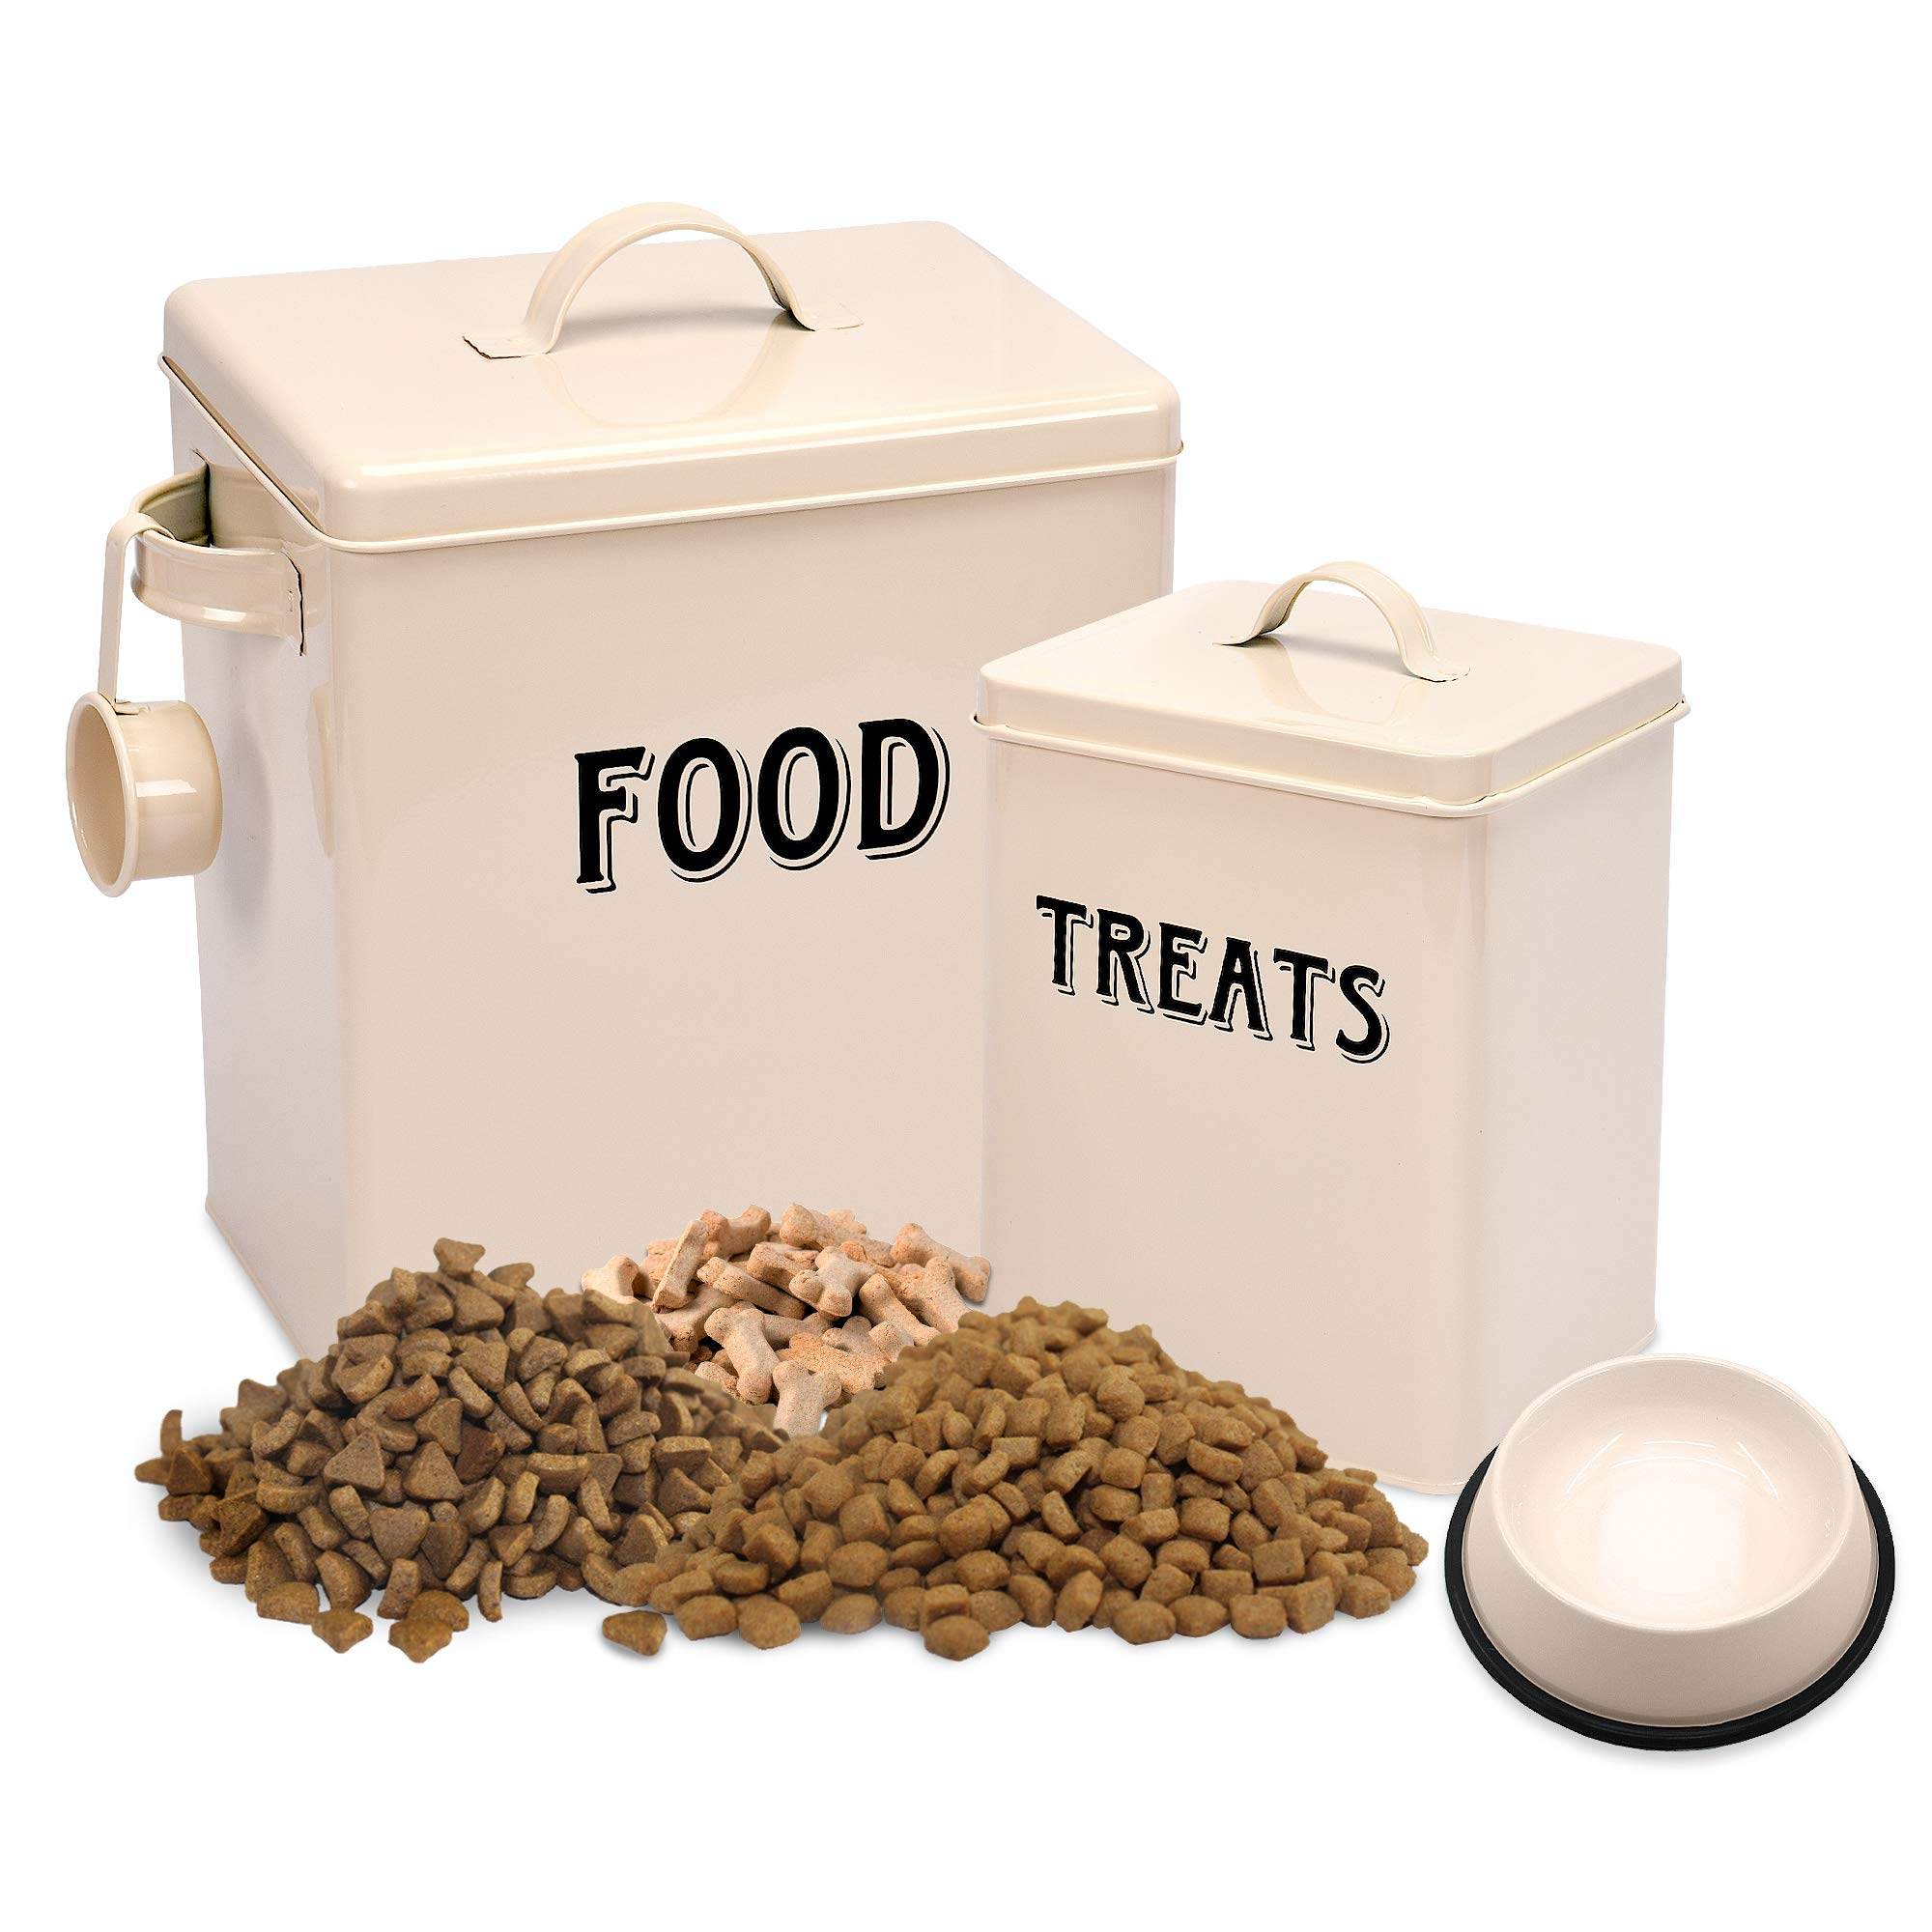 Silky Road Pet Food and Treats Containers Set with Scoop and Bowl for Cats or Dogs Vintage Cream Powder-Coated Carbon Steel - Air-Tight Fitting Lid - Storage Canister Tins by Silky Road